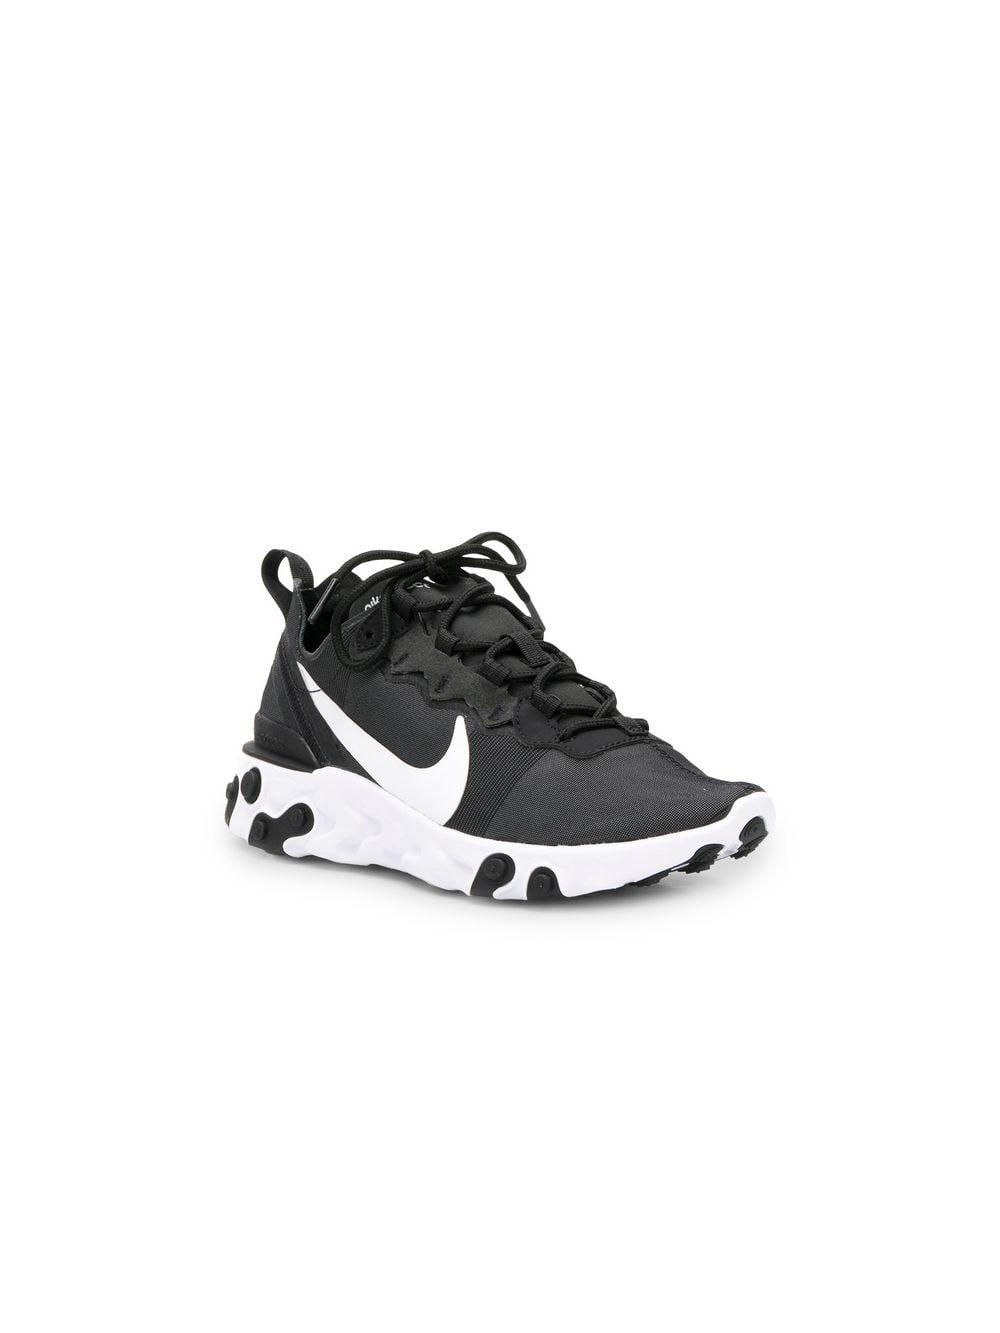 cac1a6d2224 Nike React Element 55 Sneakers in Black - Save 6% - Lyst